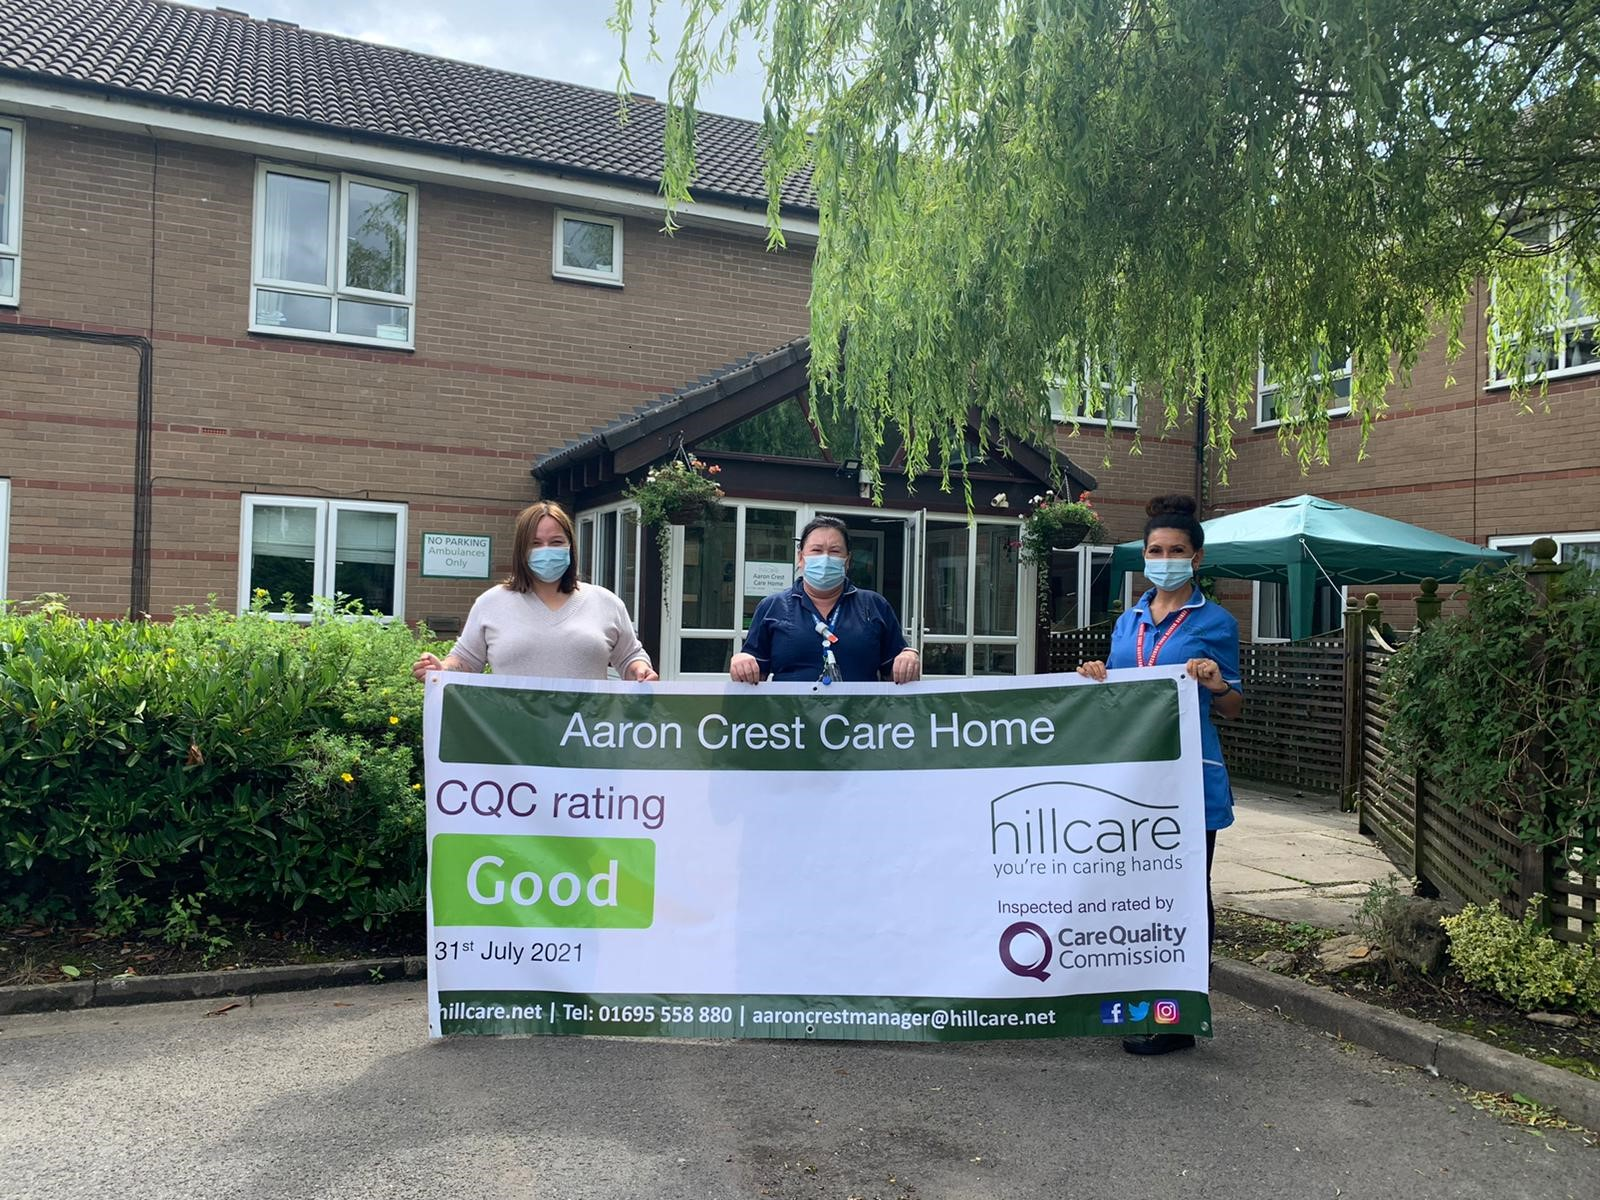 Care home gets glowing report after surprise inspection by CQC